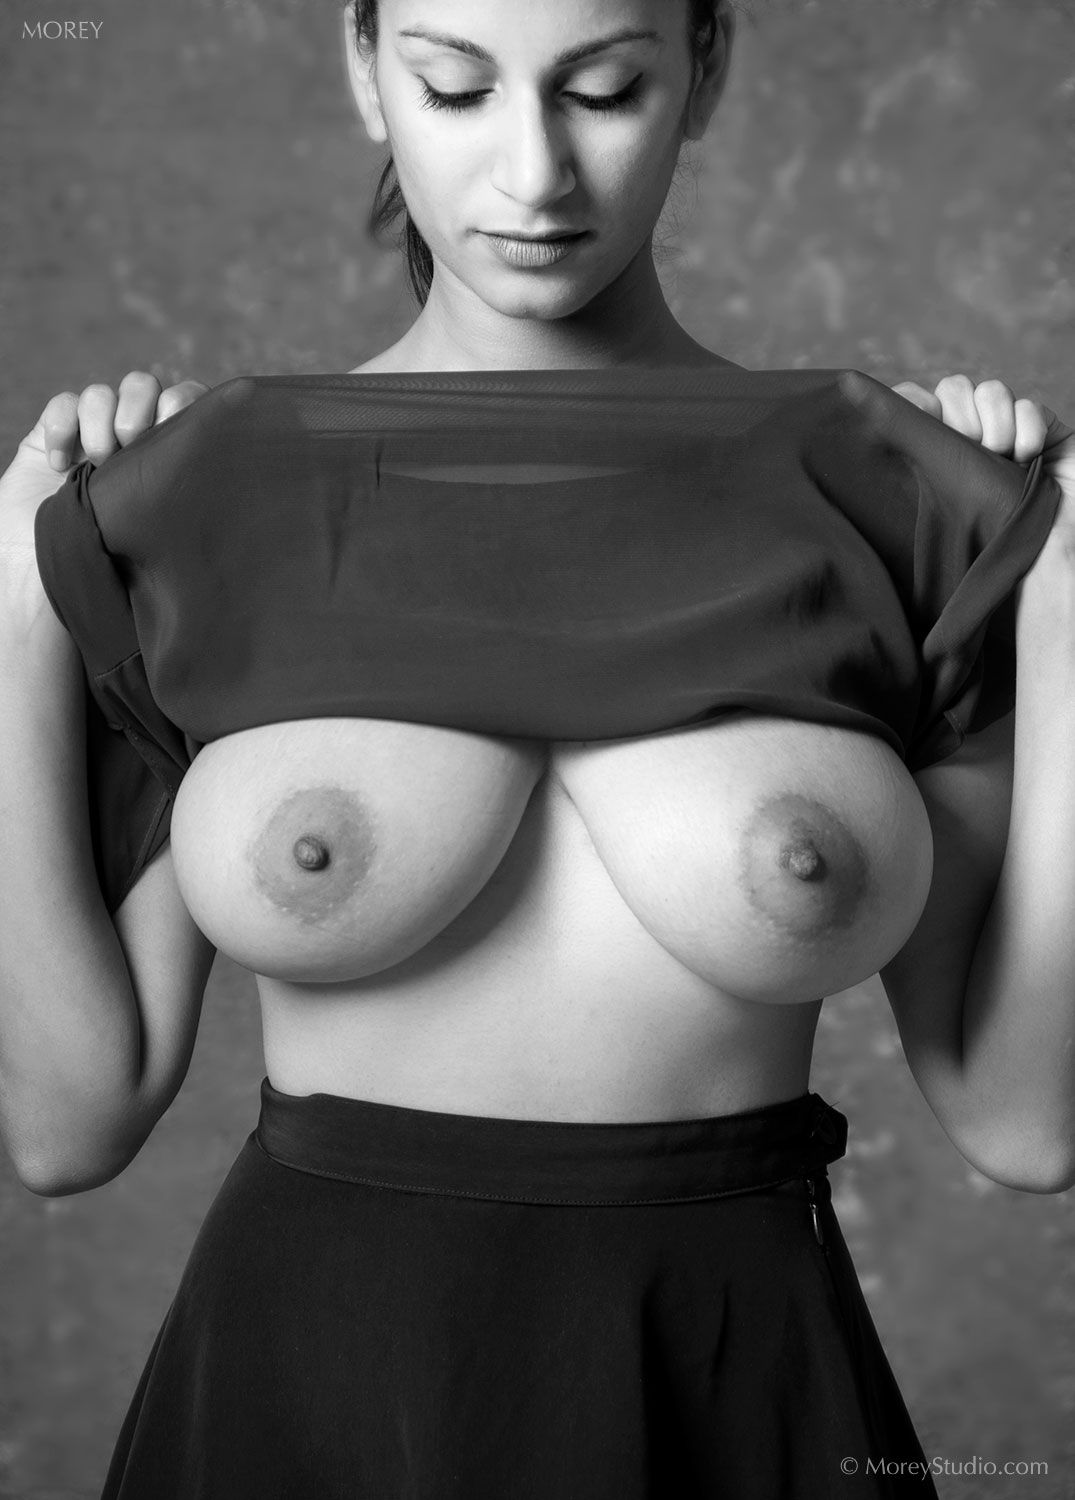 sex black and white nude photography